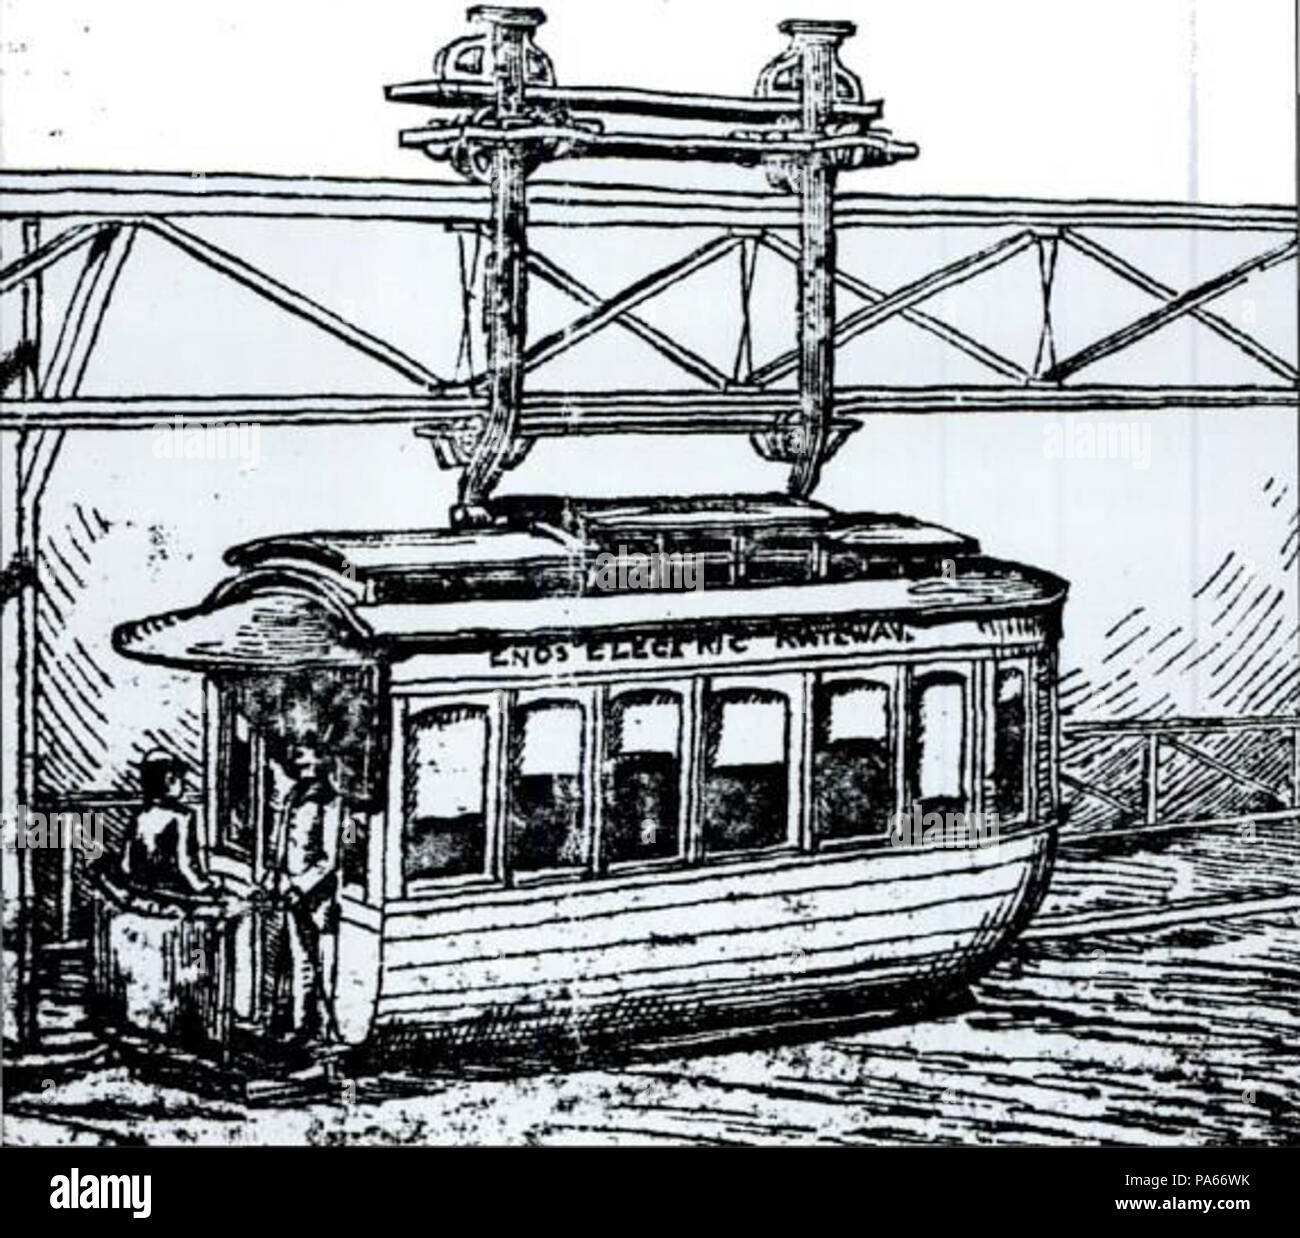 . English: Drawing of a car of the Enos Electric Railway system proposed for Winthrop, Massachusetts in 1885. By 1886, the system was ready to construct, with finances and property acquisition completed. However, the Boston, Revere Beach & Lynn Railroad bought the struggling Boston, Winthrop & Shore, and the Enos Electric plans were quickly buried. circa 1886 622 Enos Electric Railway Stock Photo